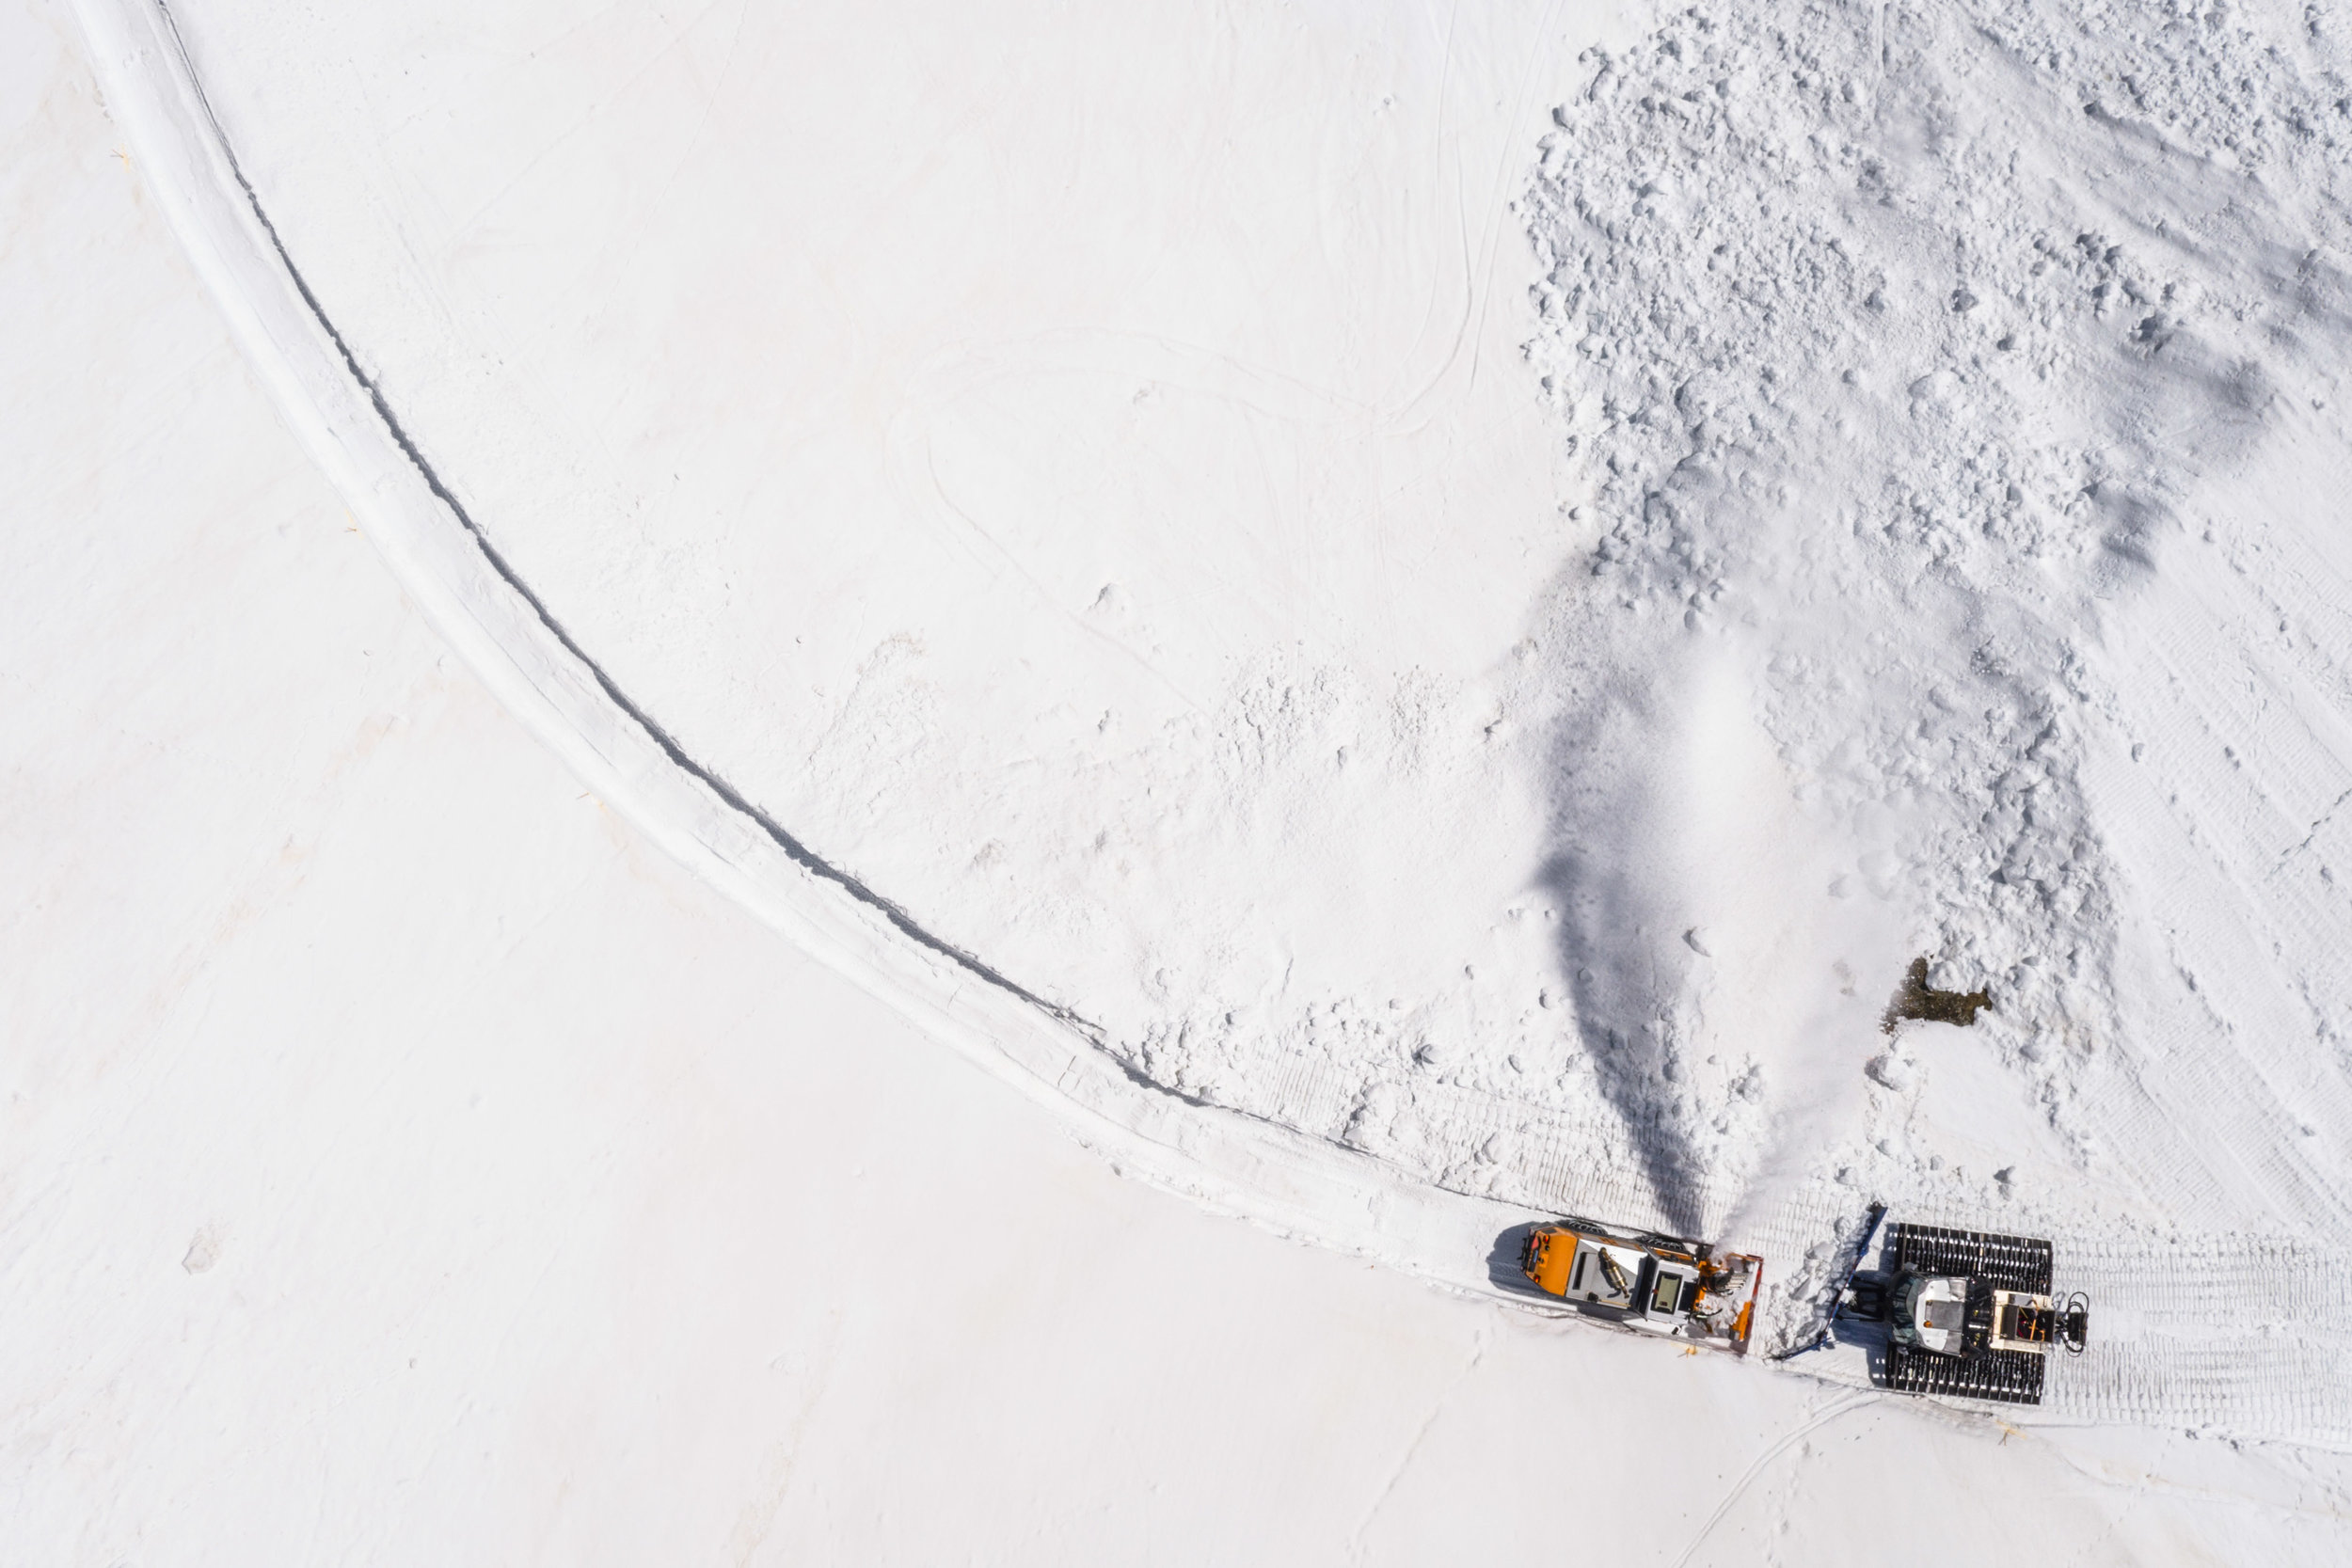 Snow ploughs are pictured clearing snow off the road at the Great St. Bernard pass, Switzerland, Tuesday May 16, 2017. The snow ploughs and snow blowers make their way slowly through the mountain every spring and will have carved through layers several meter-deep during a four-week operation this year. The Col du Grand-Saint-Bernard, in French, is the third highest road pass of Switzerland and connects the canton of Valais to Italy. (KEYSTONE/Valentin Flauraud)